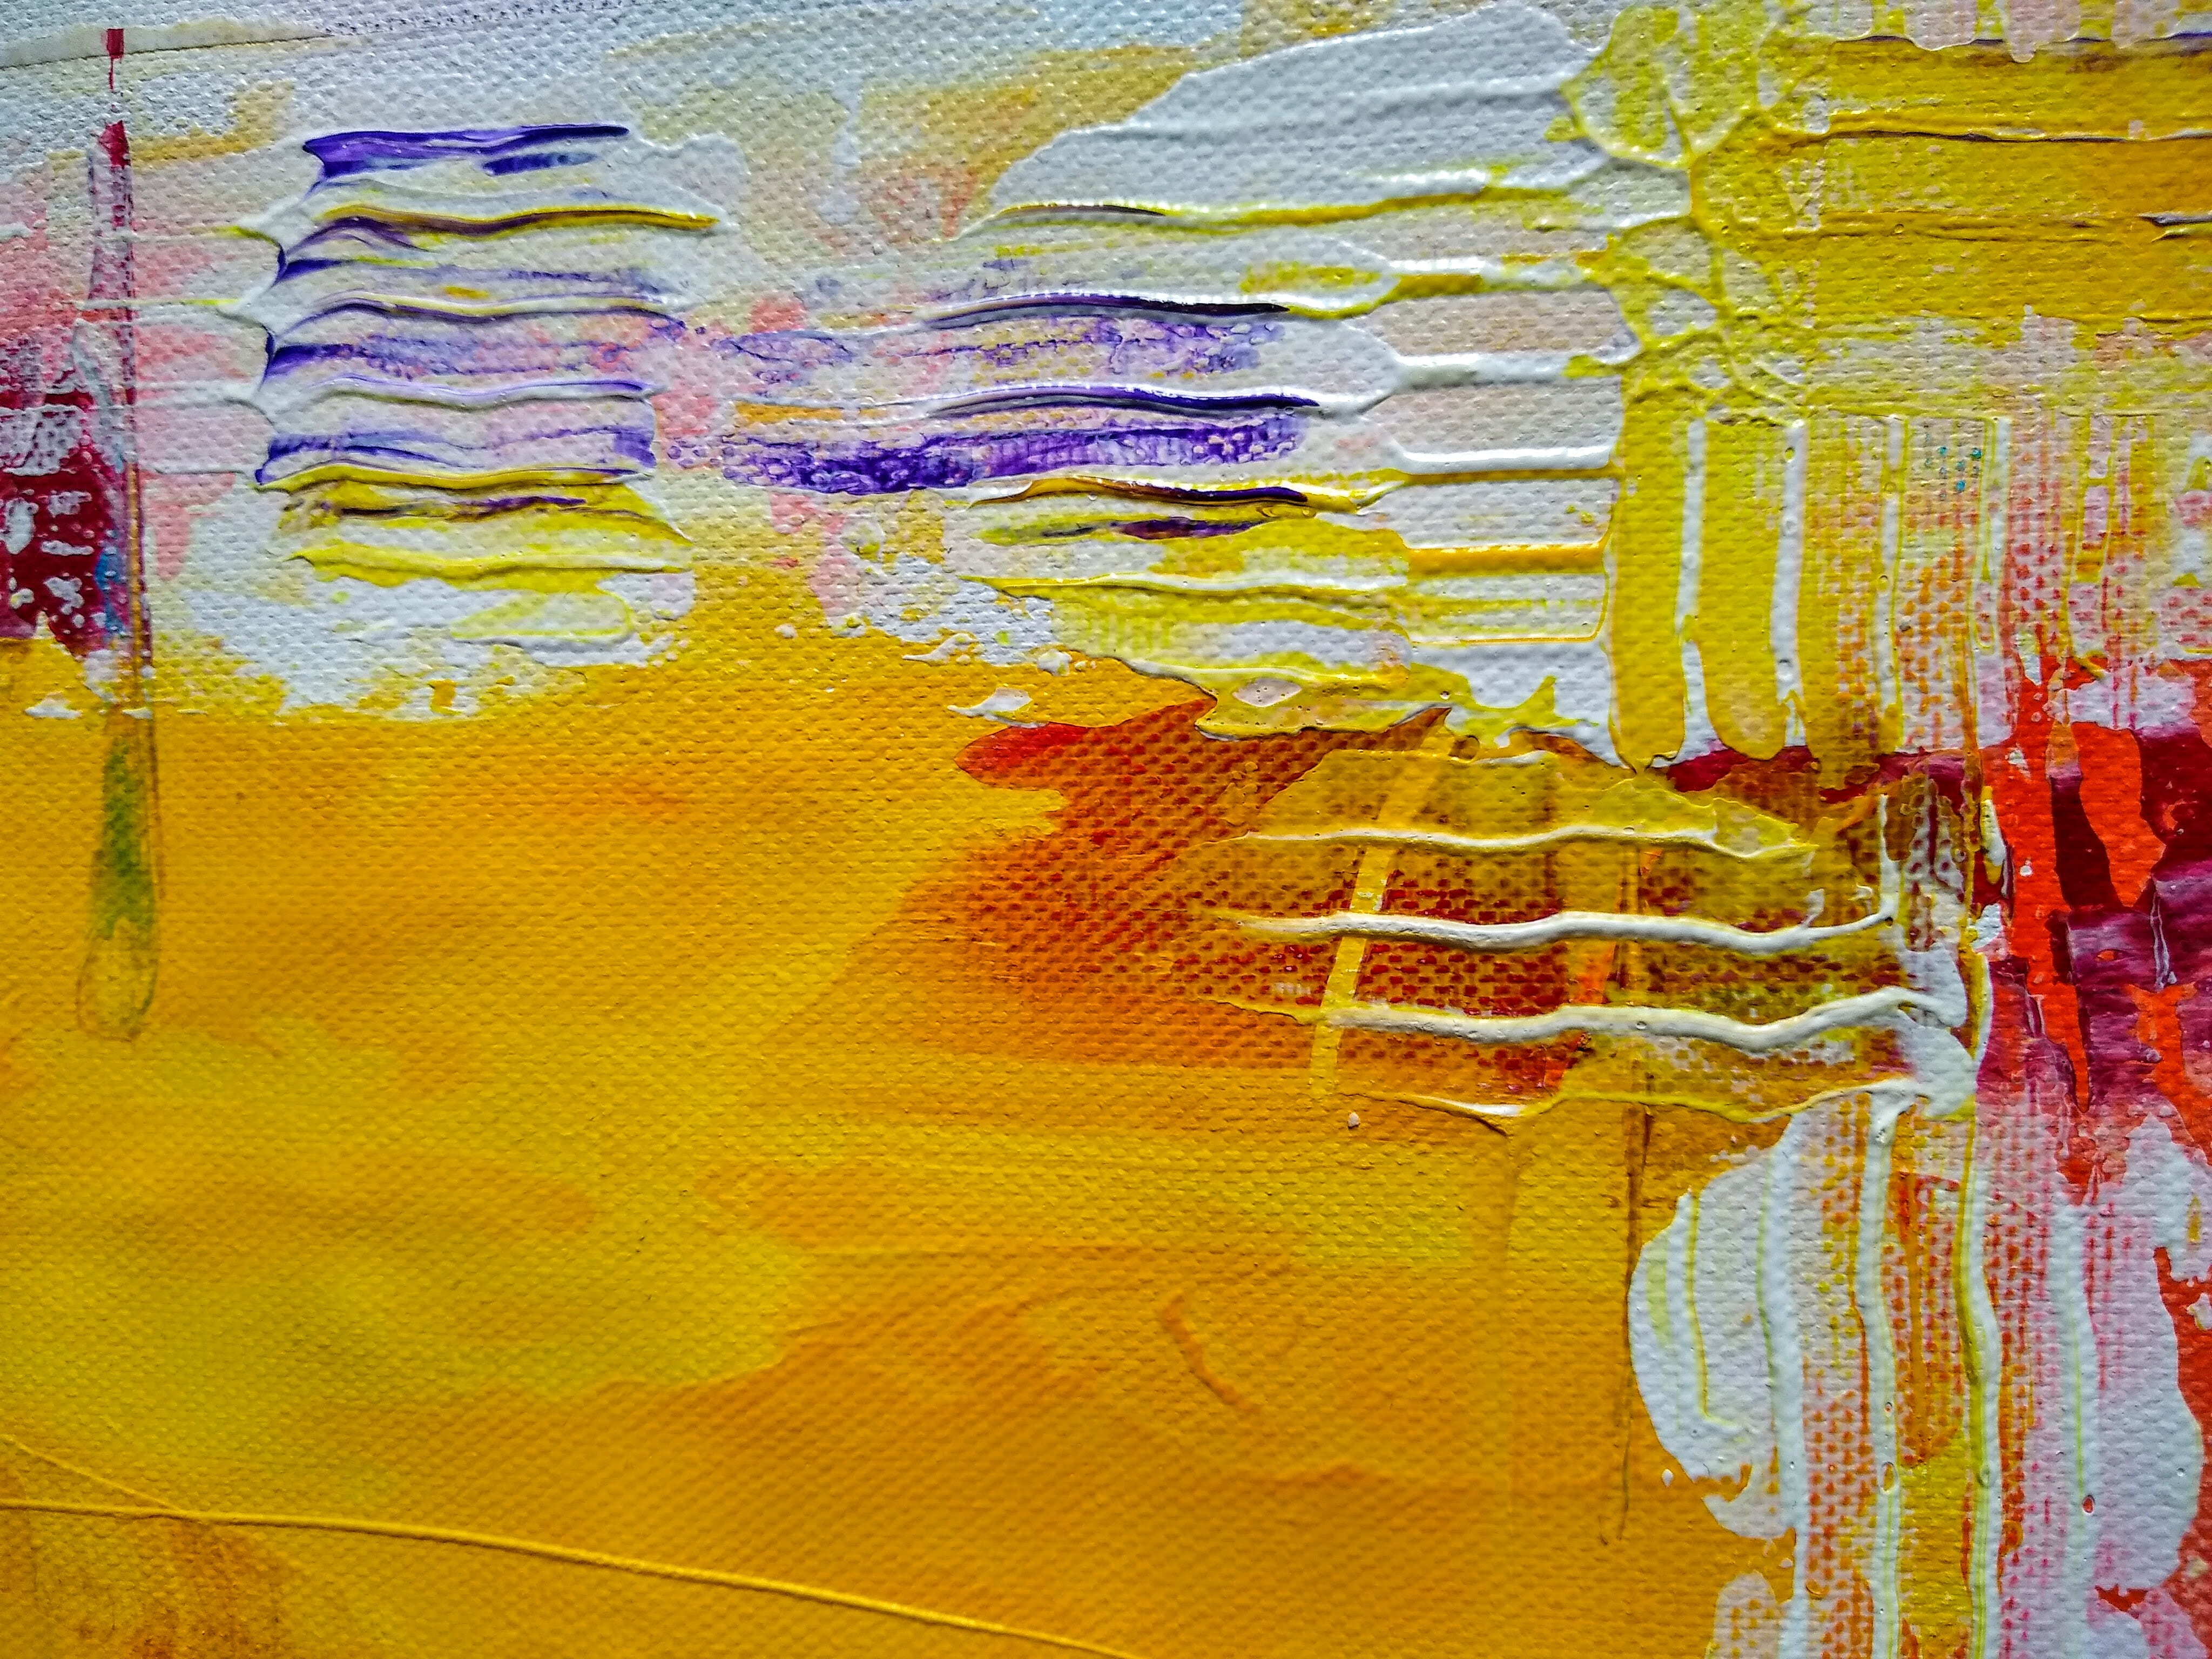 A painting. It is textured, yellow, red, white and purple.